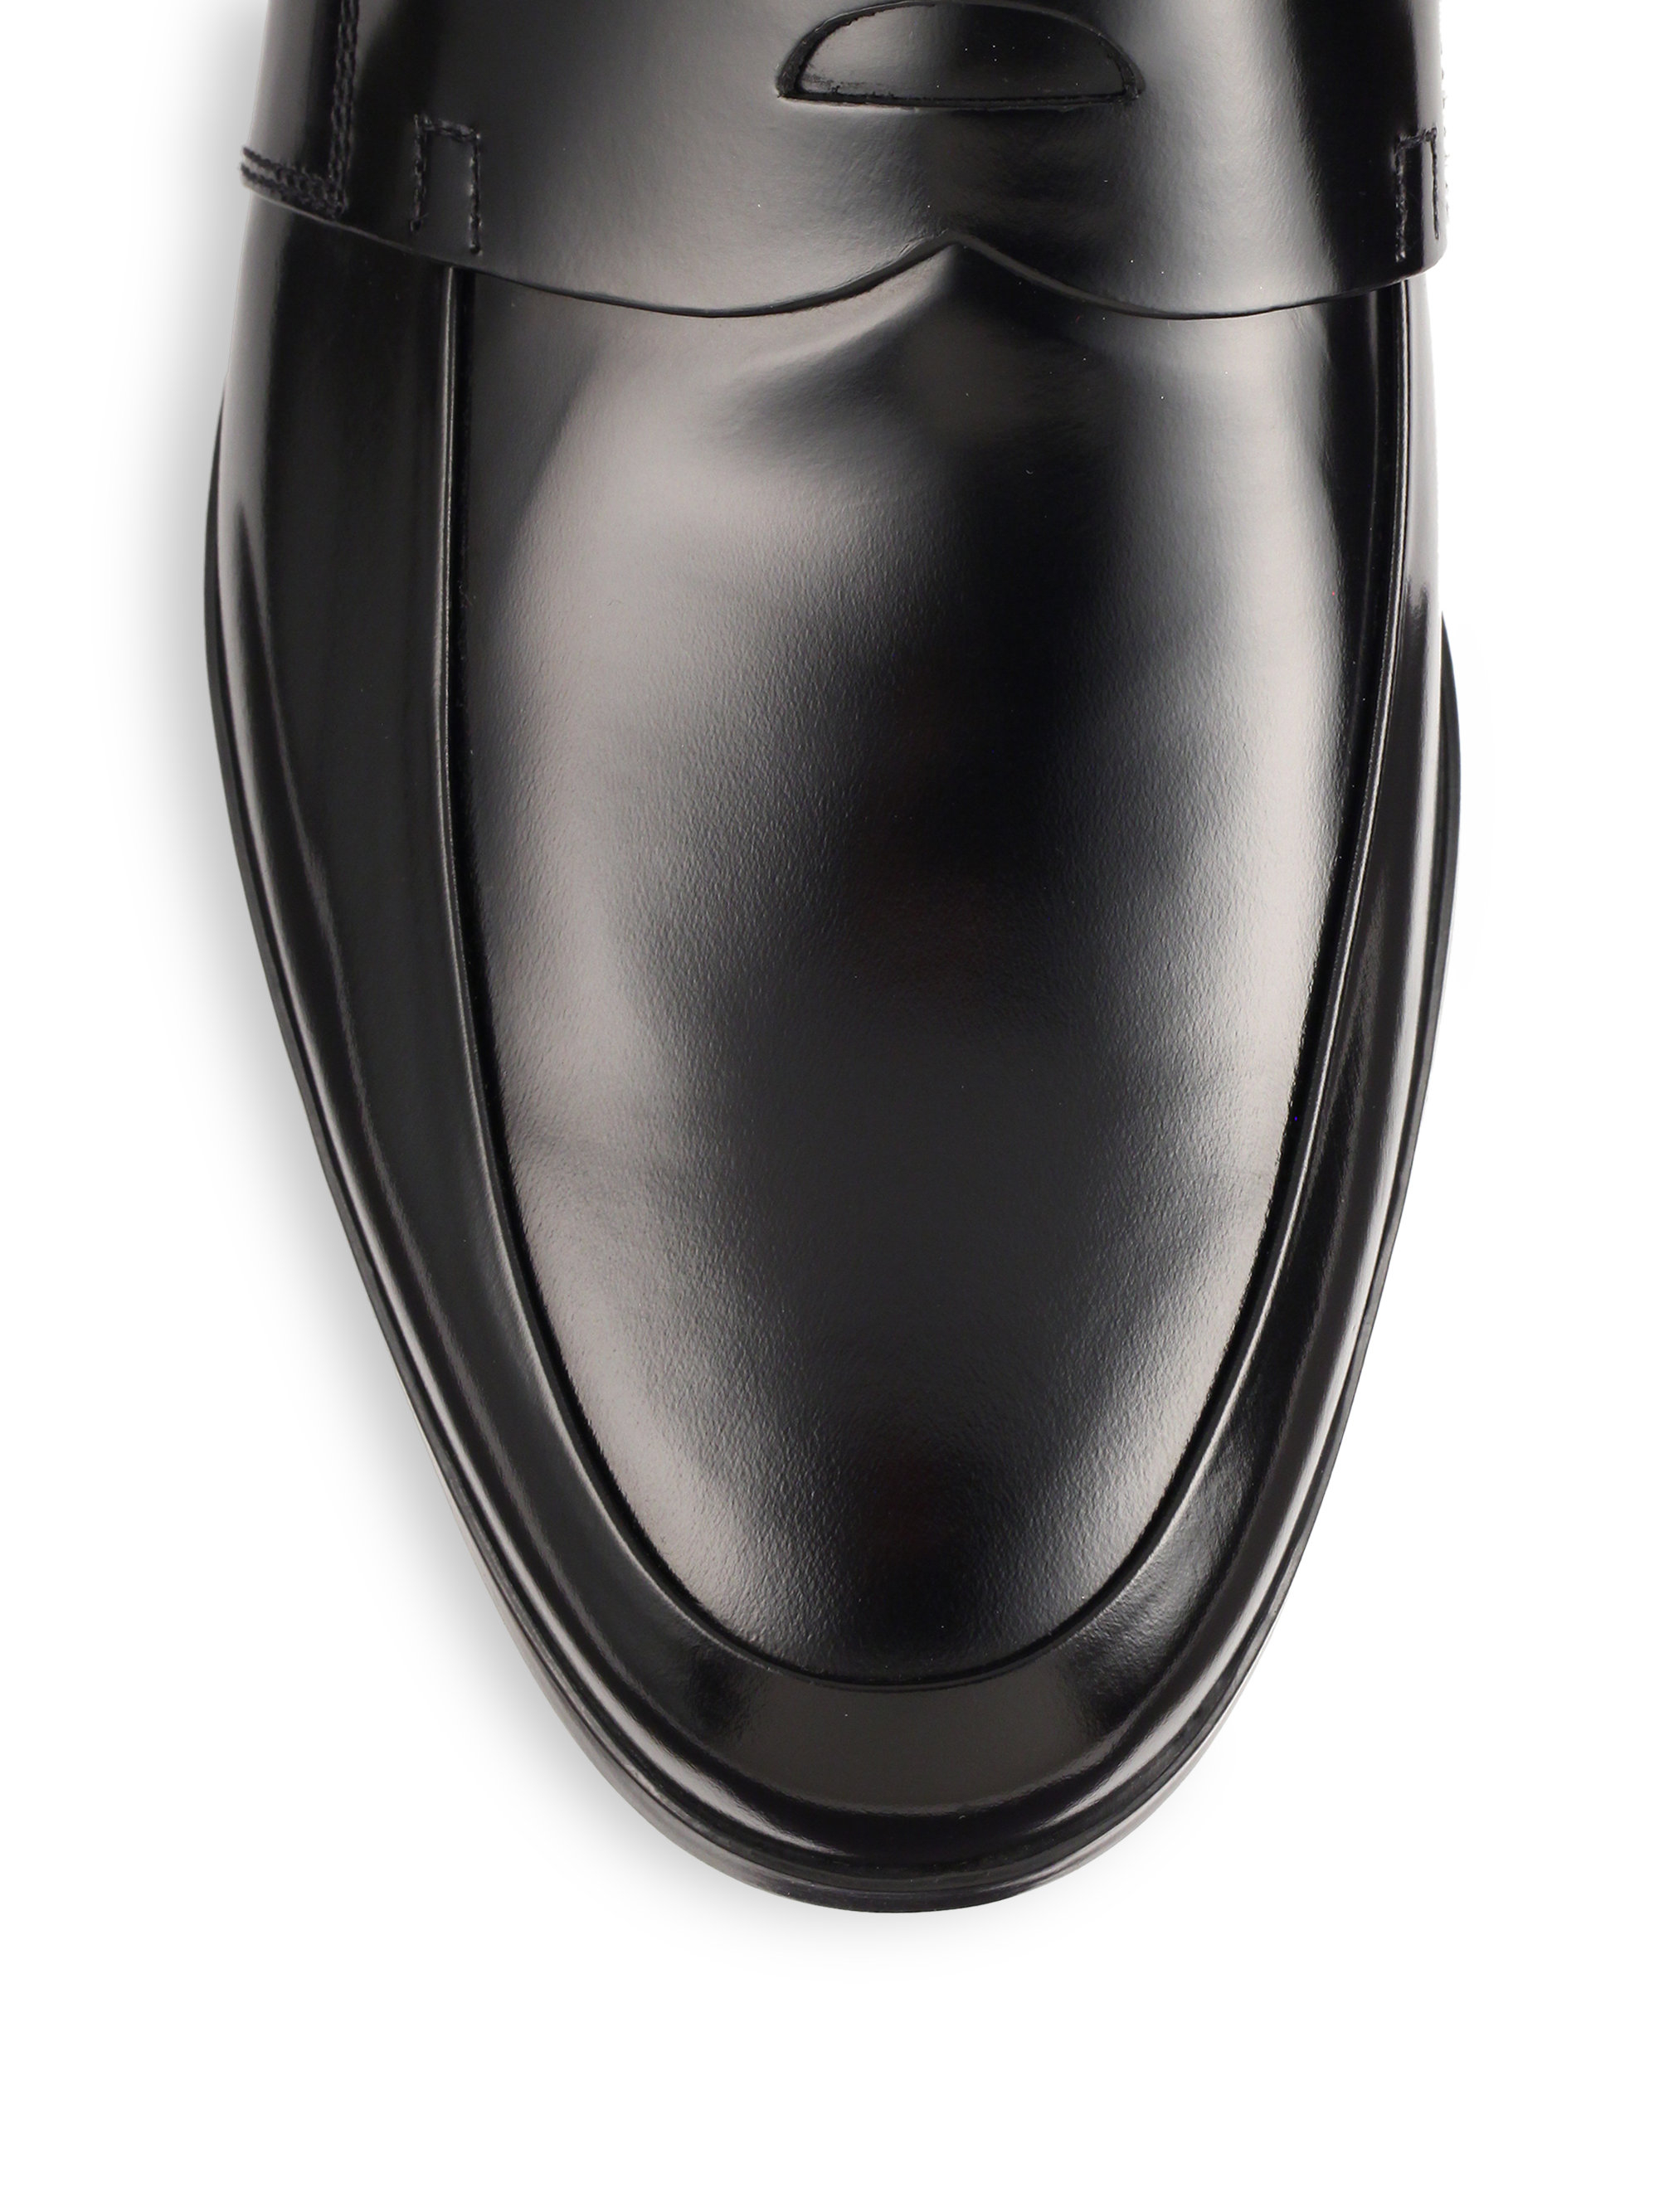 prada handbags and purses - Prada Spazzolato Leather Penny Loafers in Black for Men | Lyst